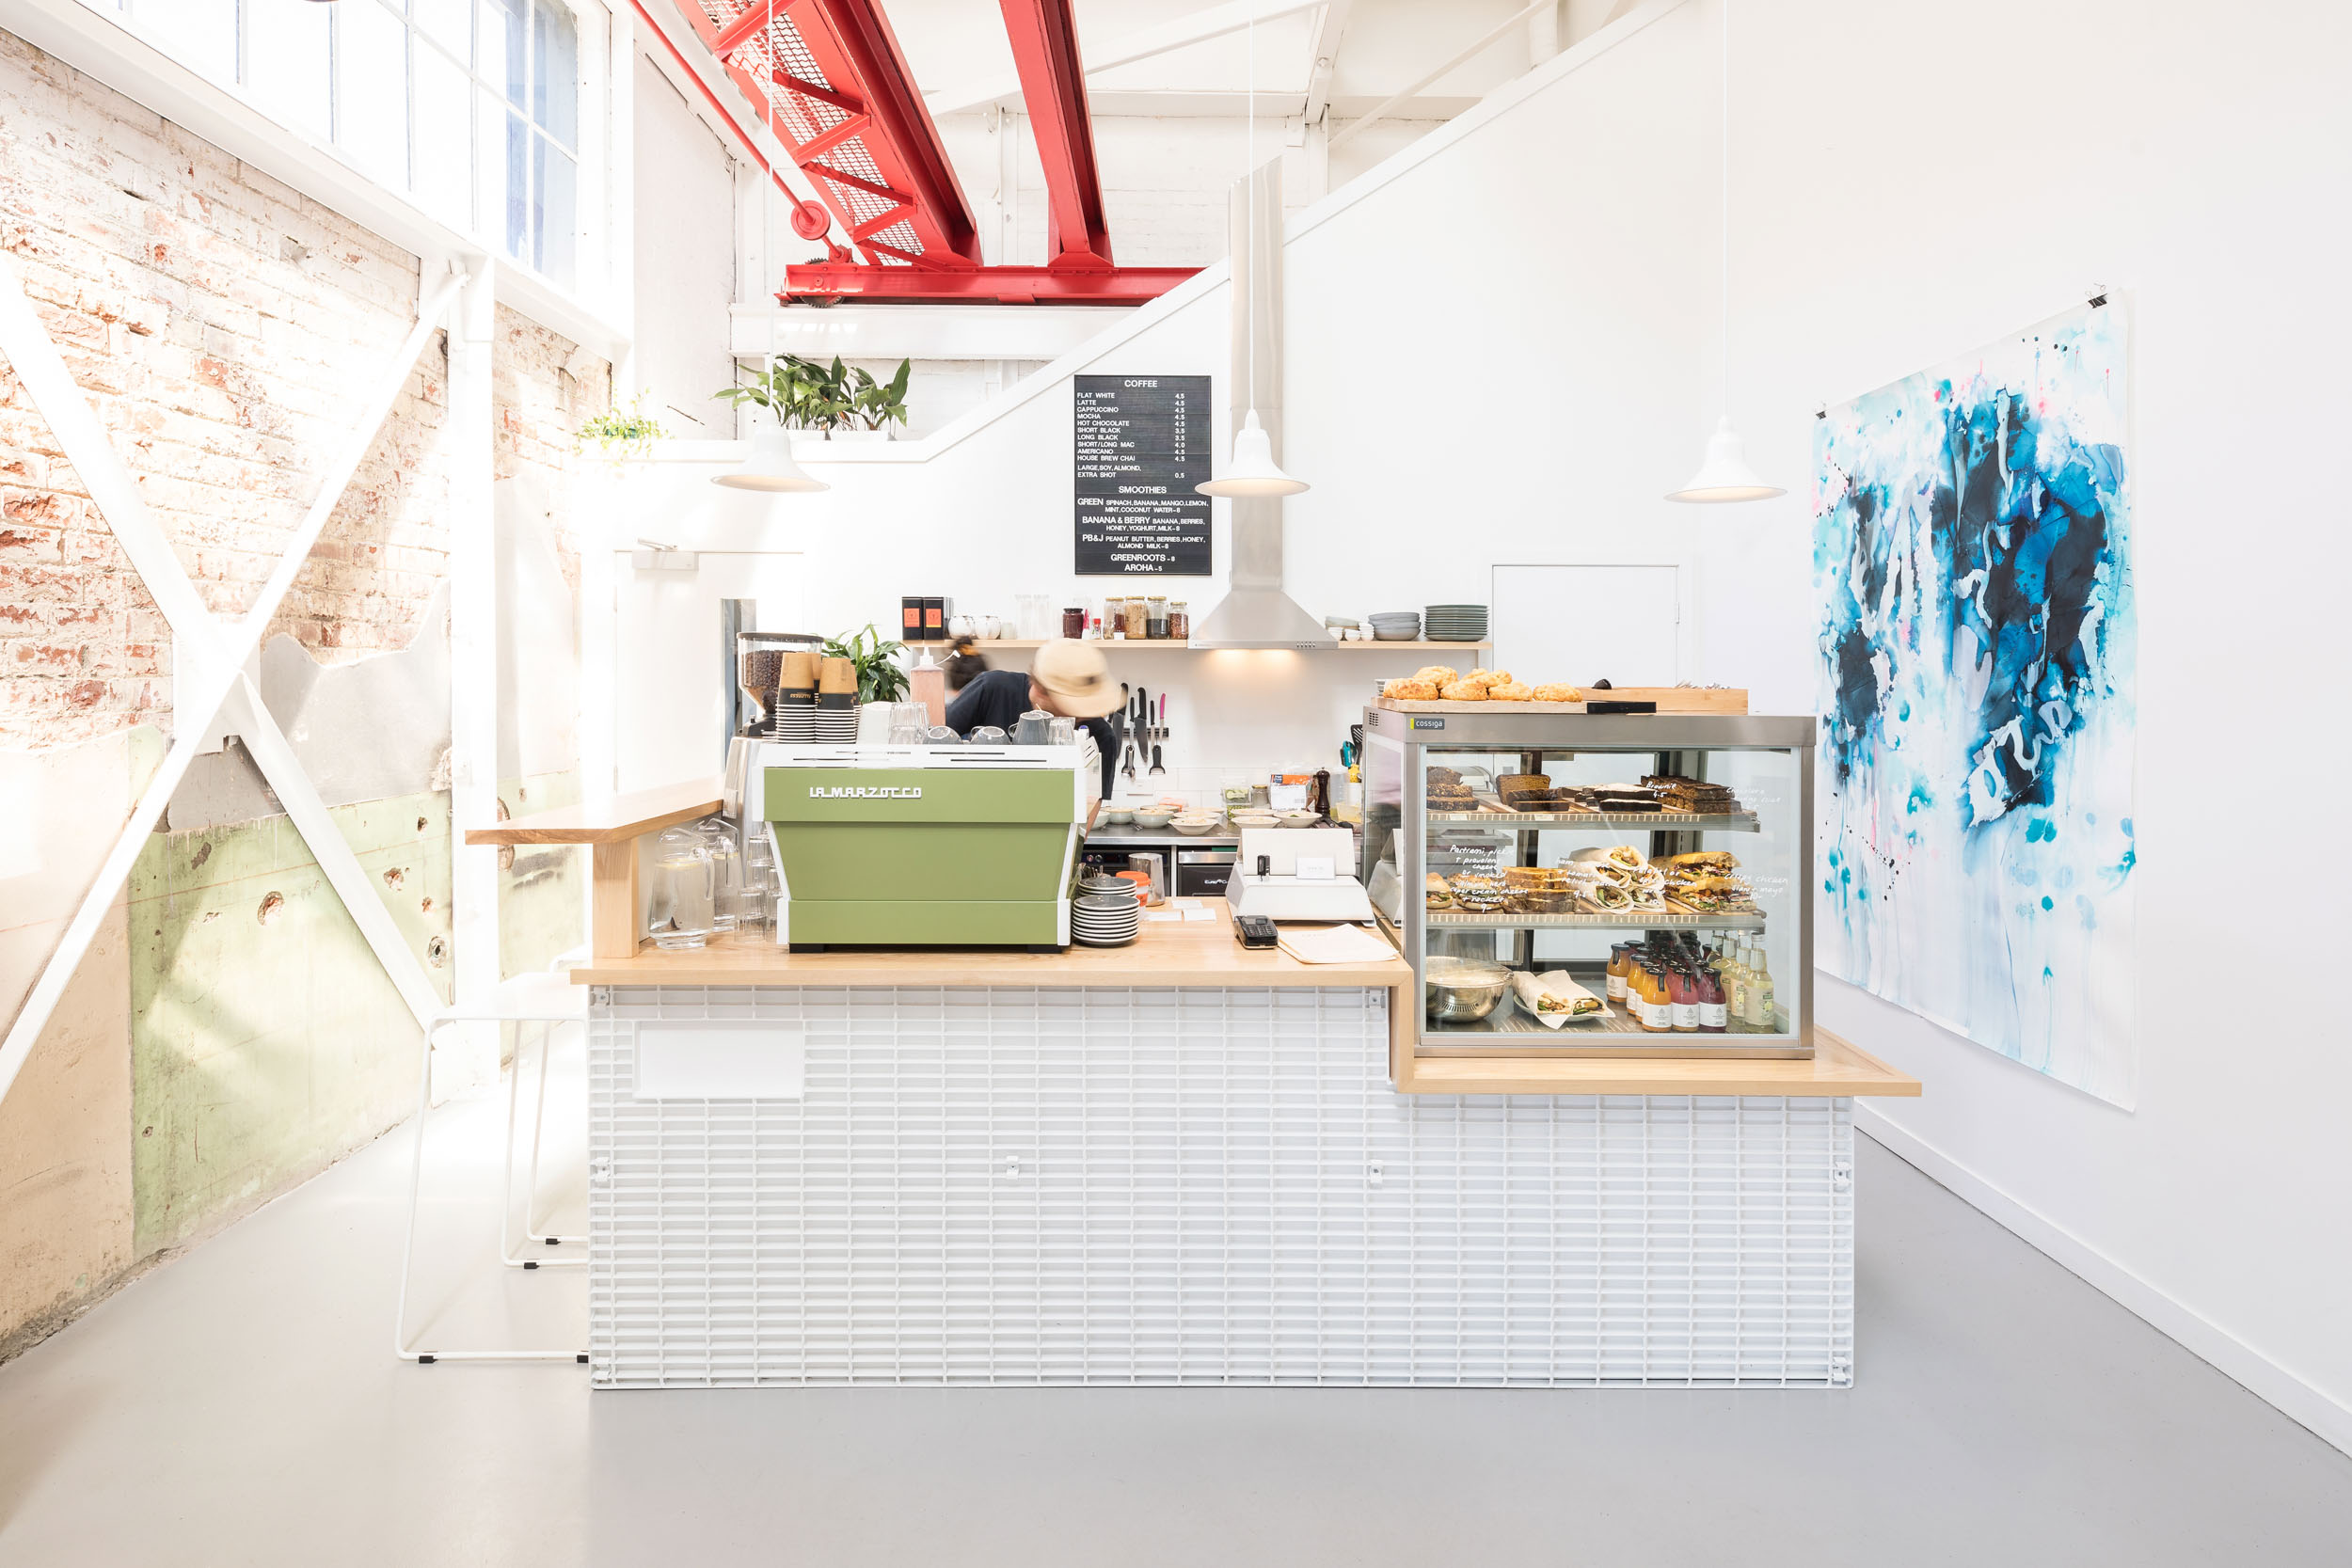 Architecturally designed cafe advertising Qb curated workspaces